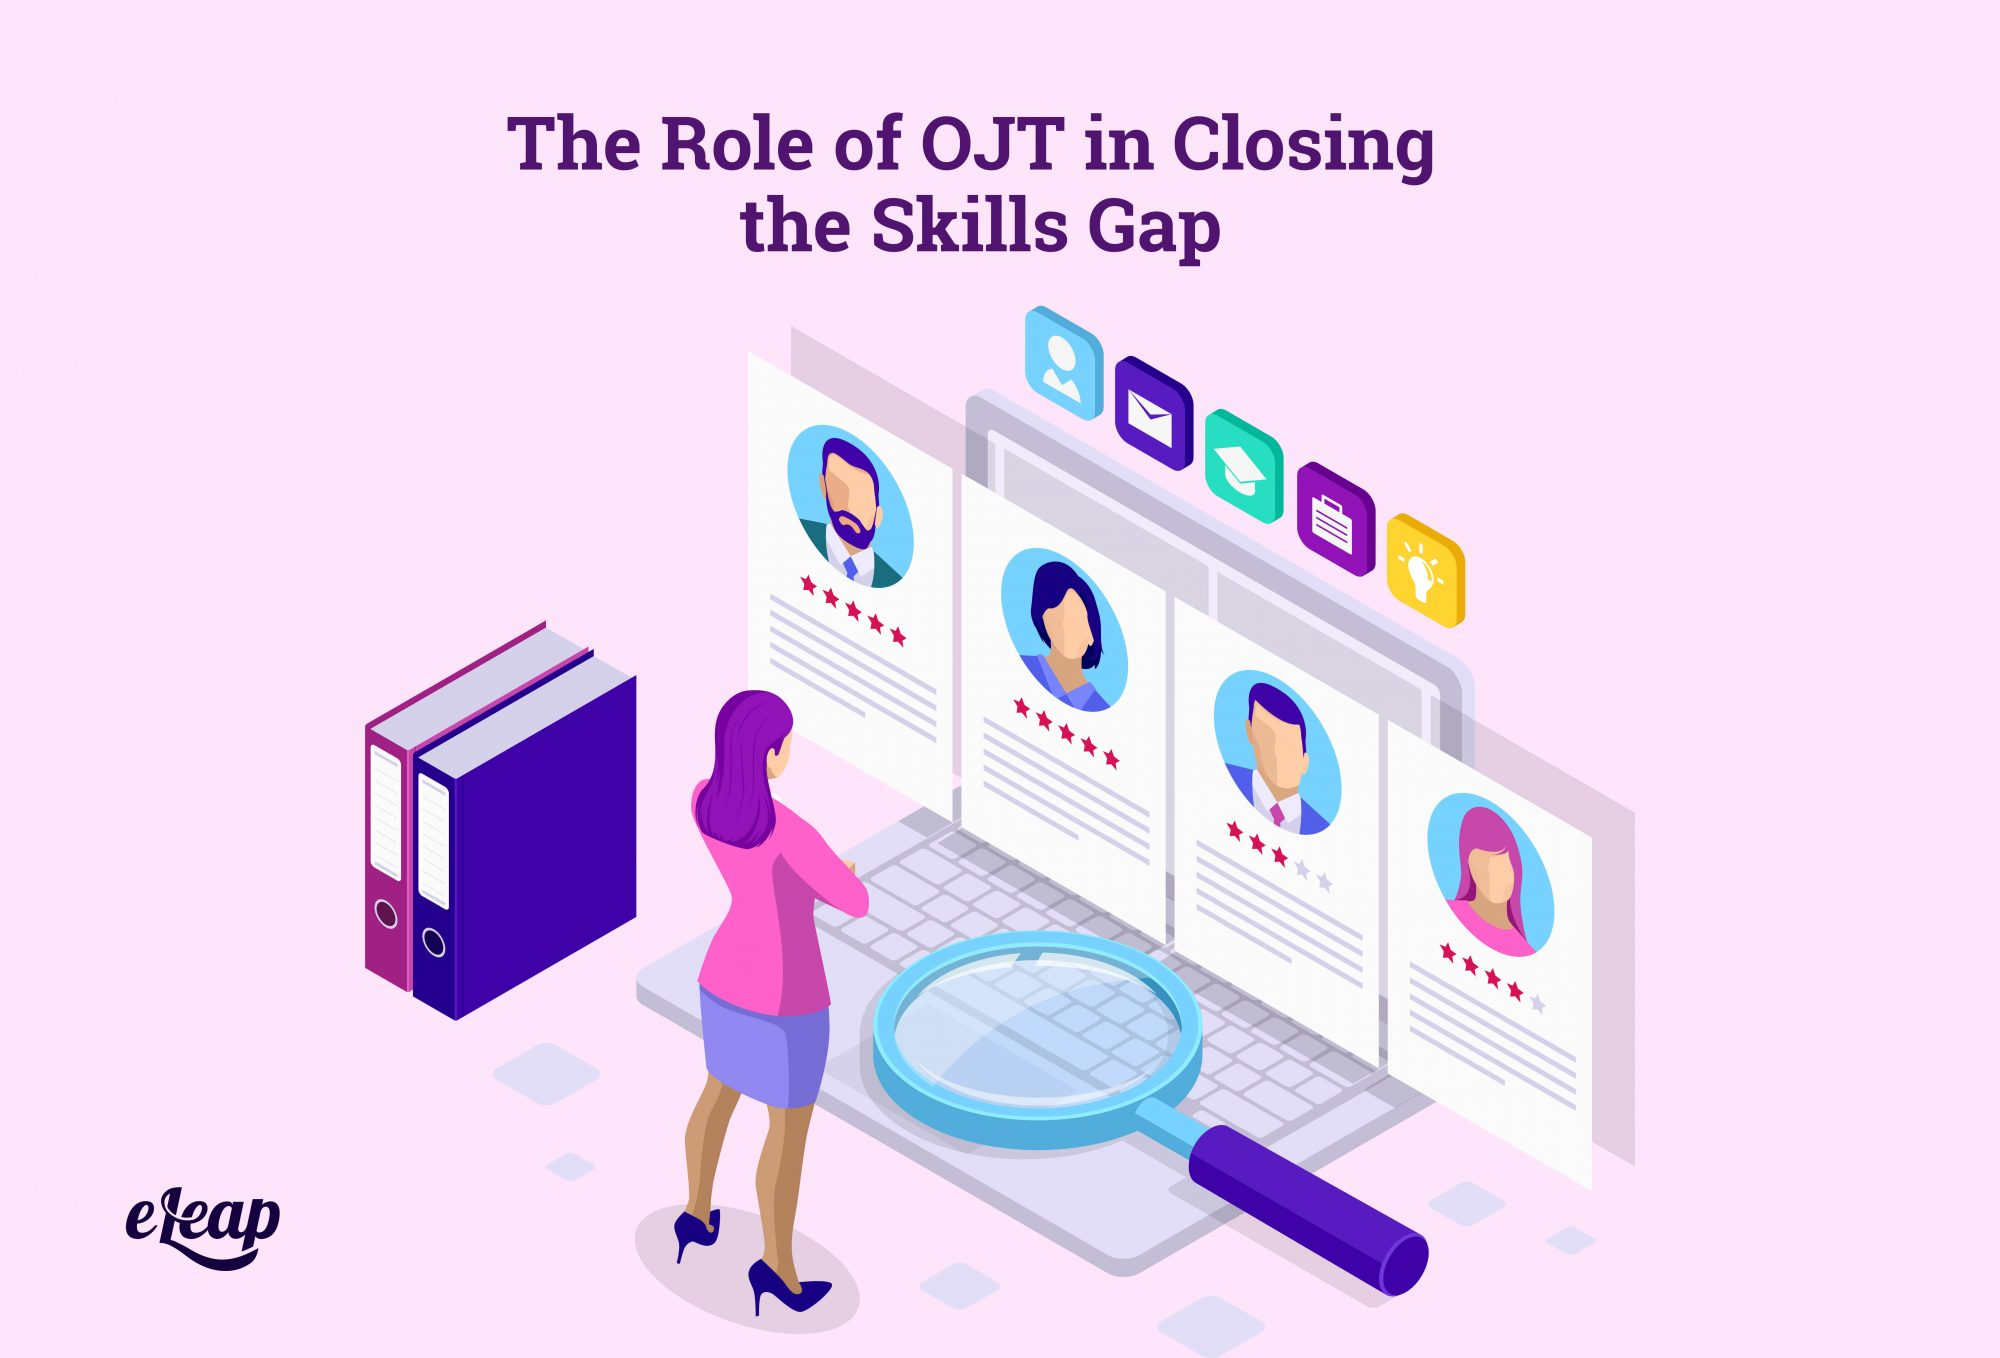 The Role of OJT in Closing the Skills Gap